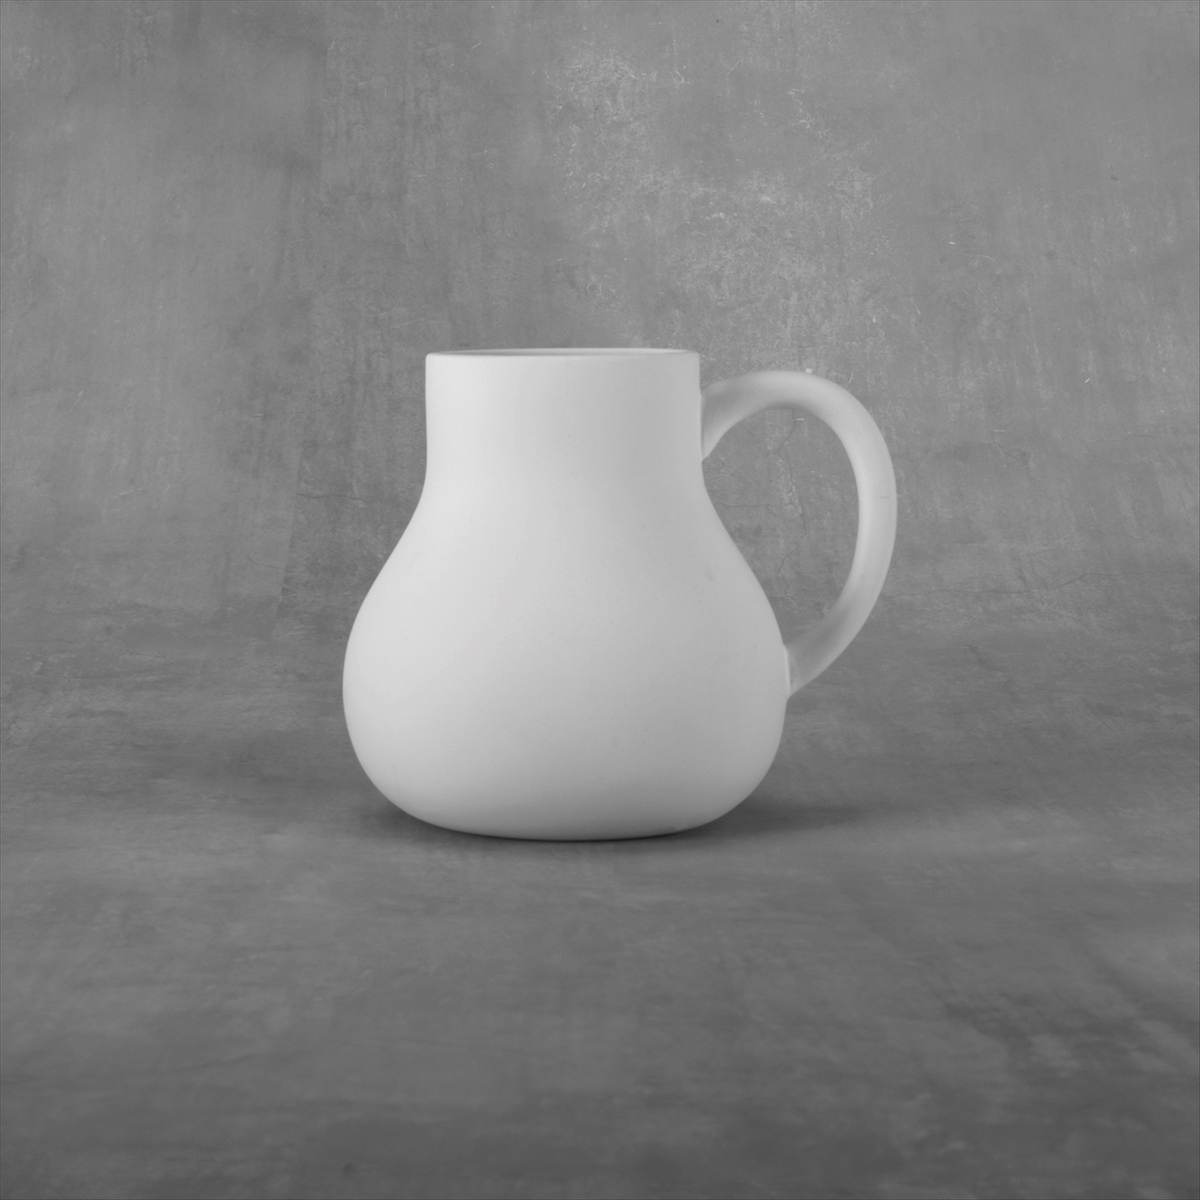 Duncan 38099 Bisque Curvy Bottom Mug 24 oz